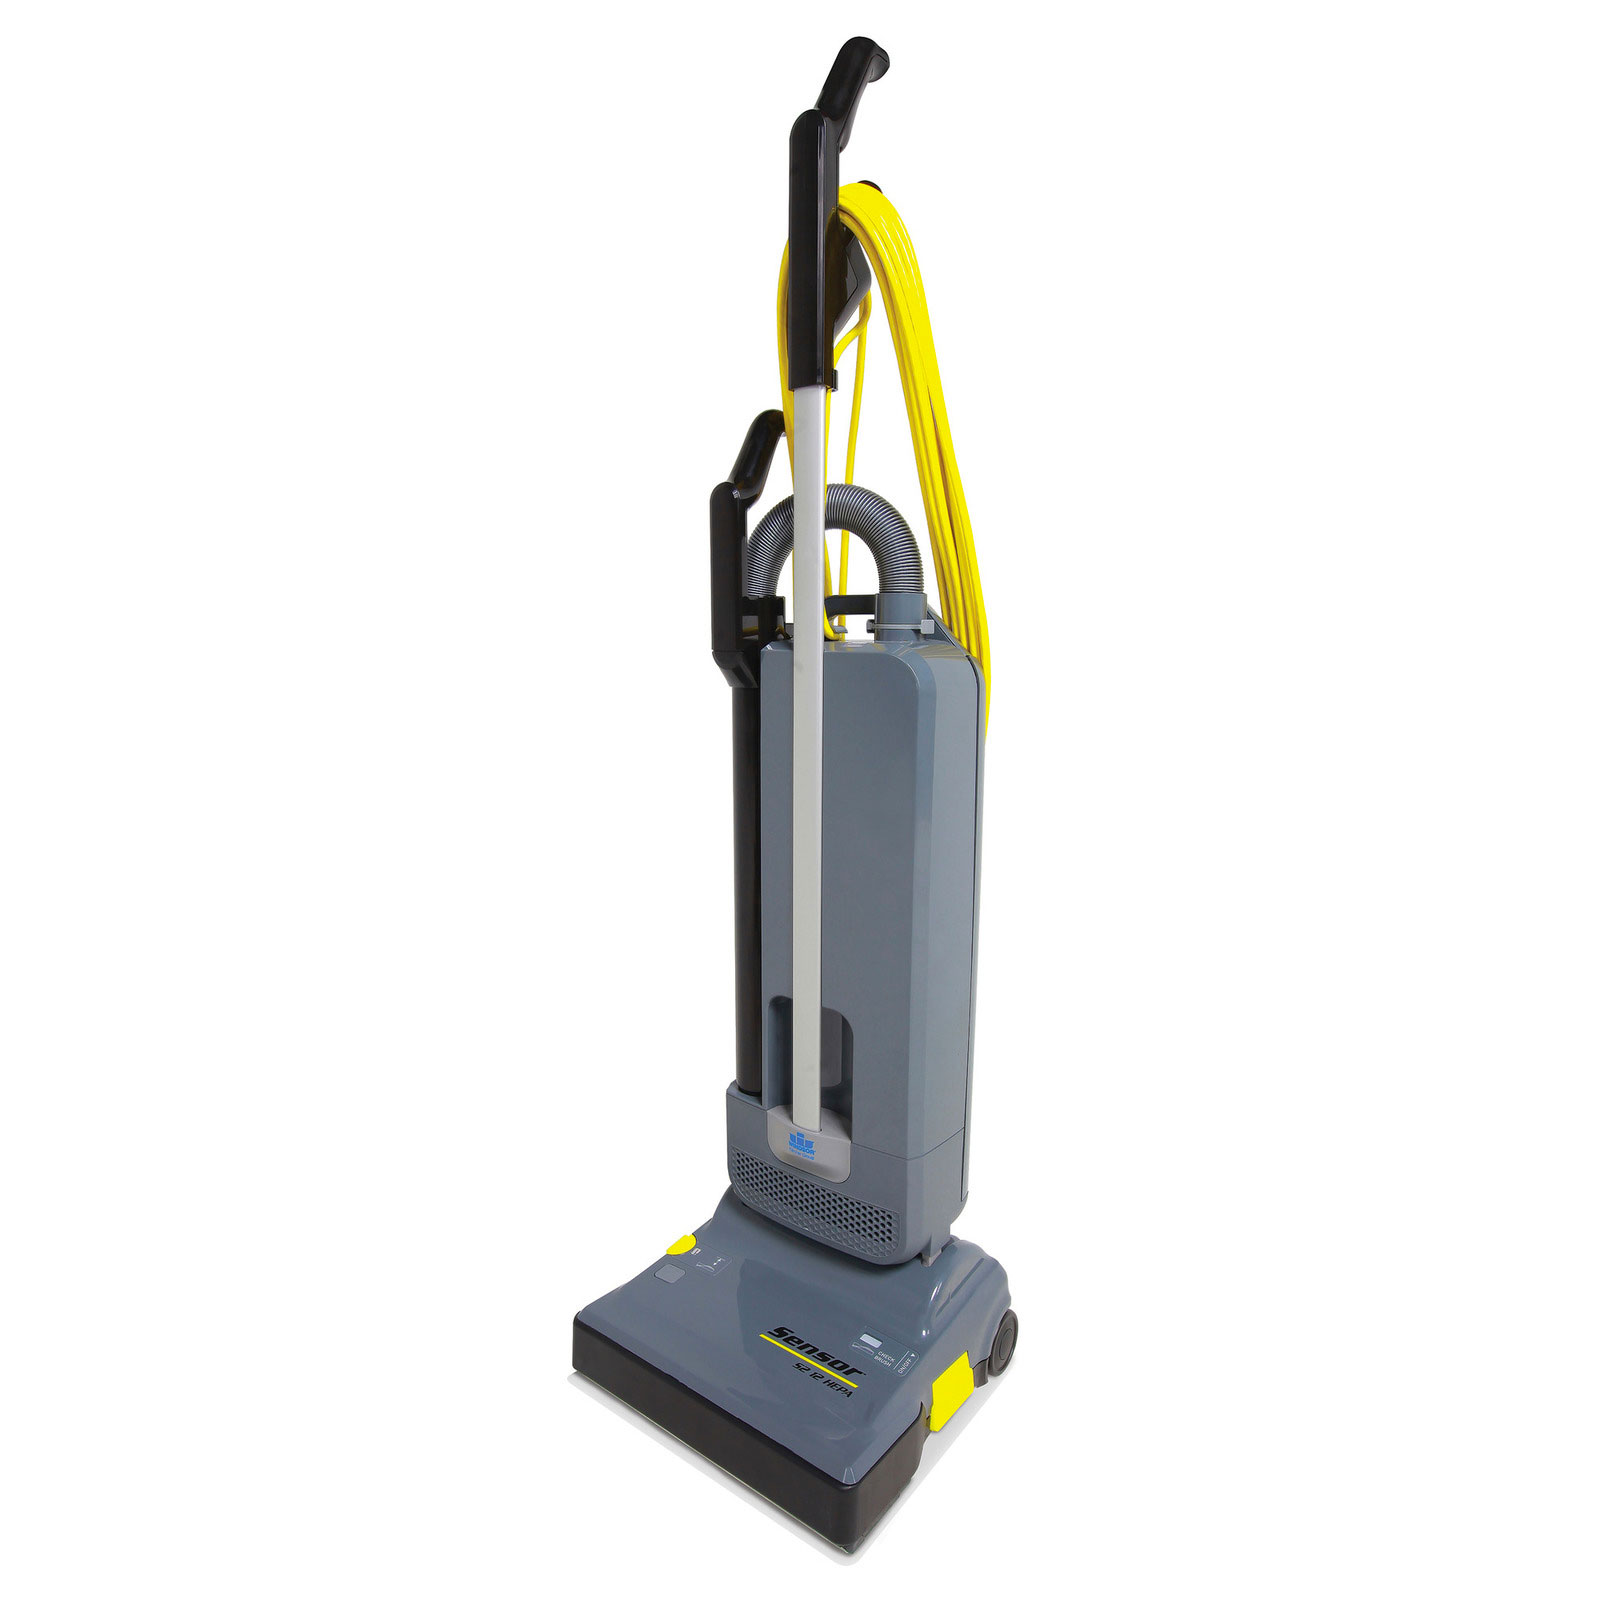 Windsor Sensor S2 HEPA 12 Inch Vacuum Cleaner 1.012-070.0 Long 3 Year Warranty FREE Shipping